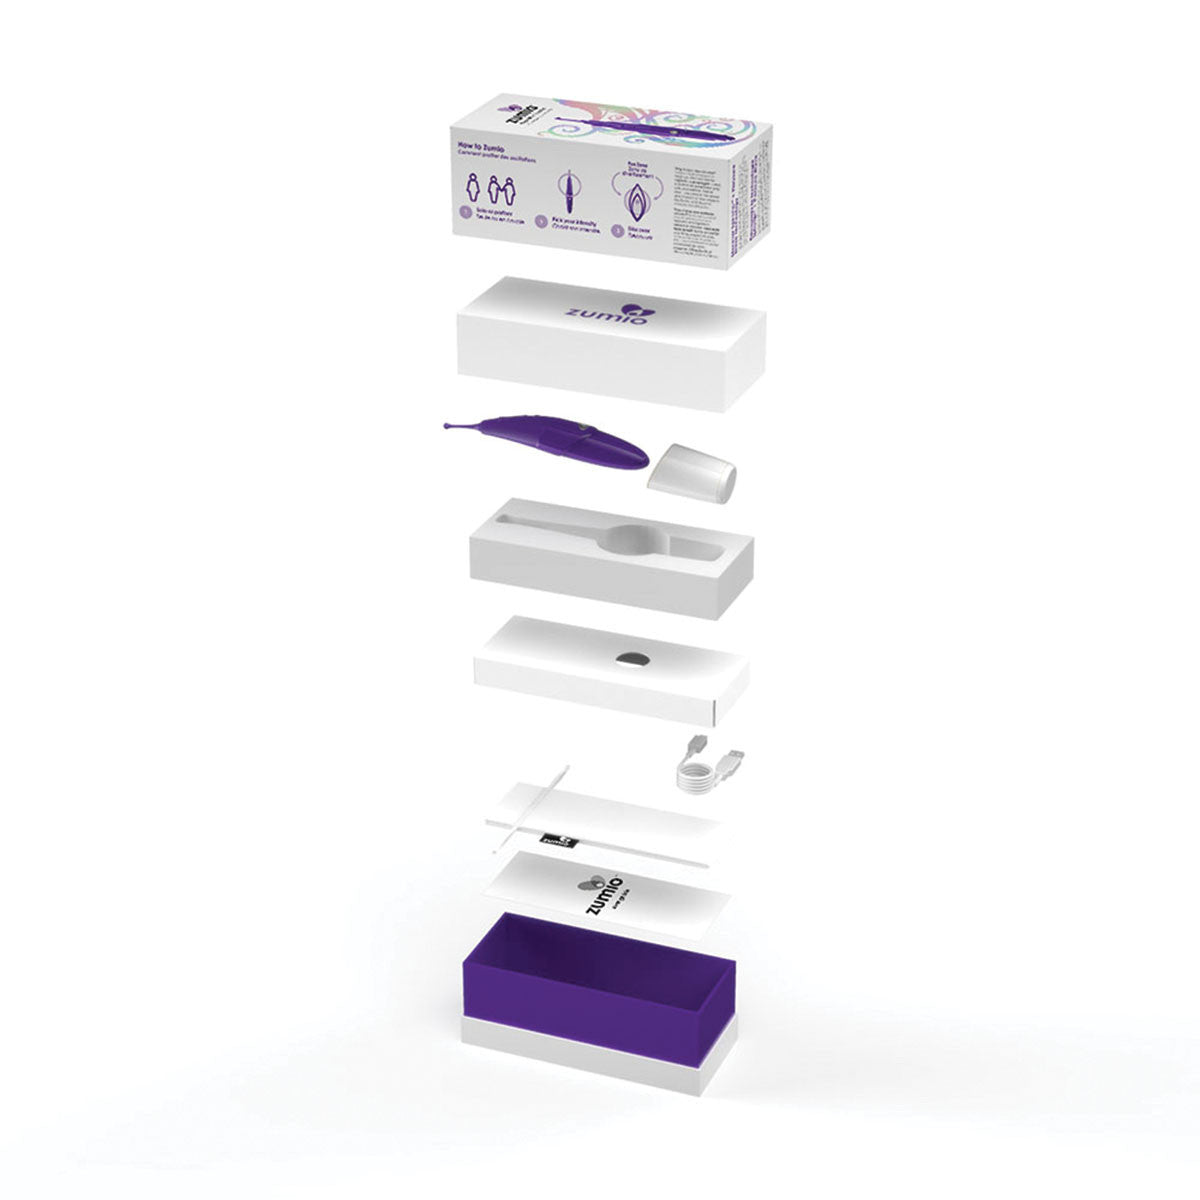 Zumio Clitoral Stimulator with packaging